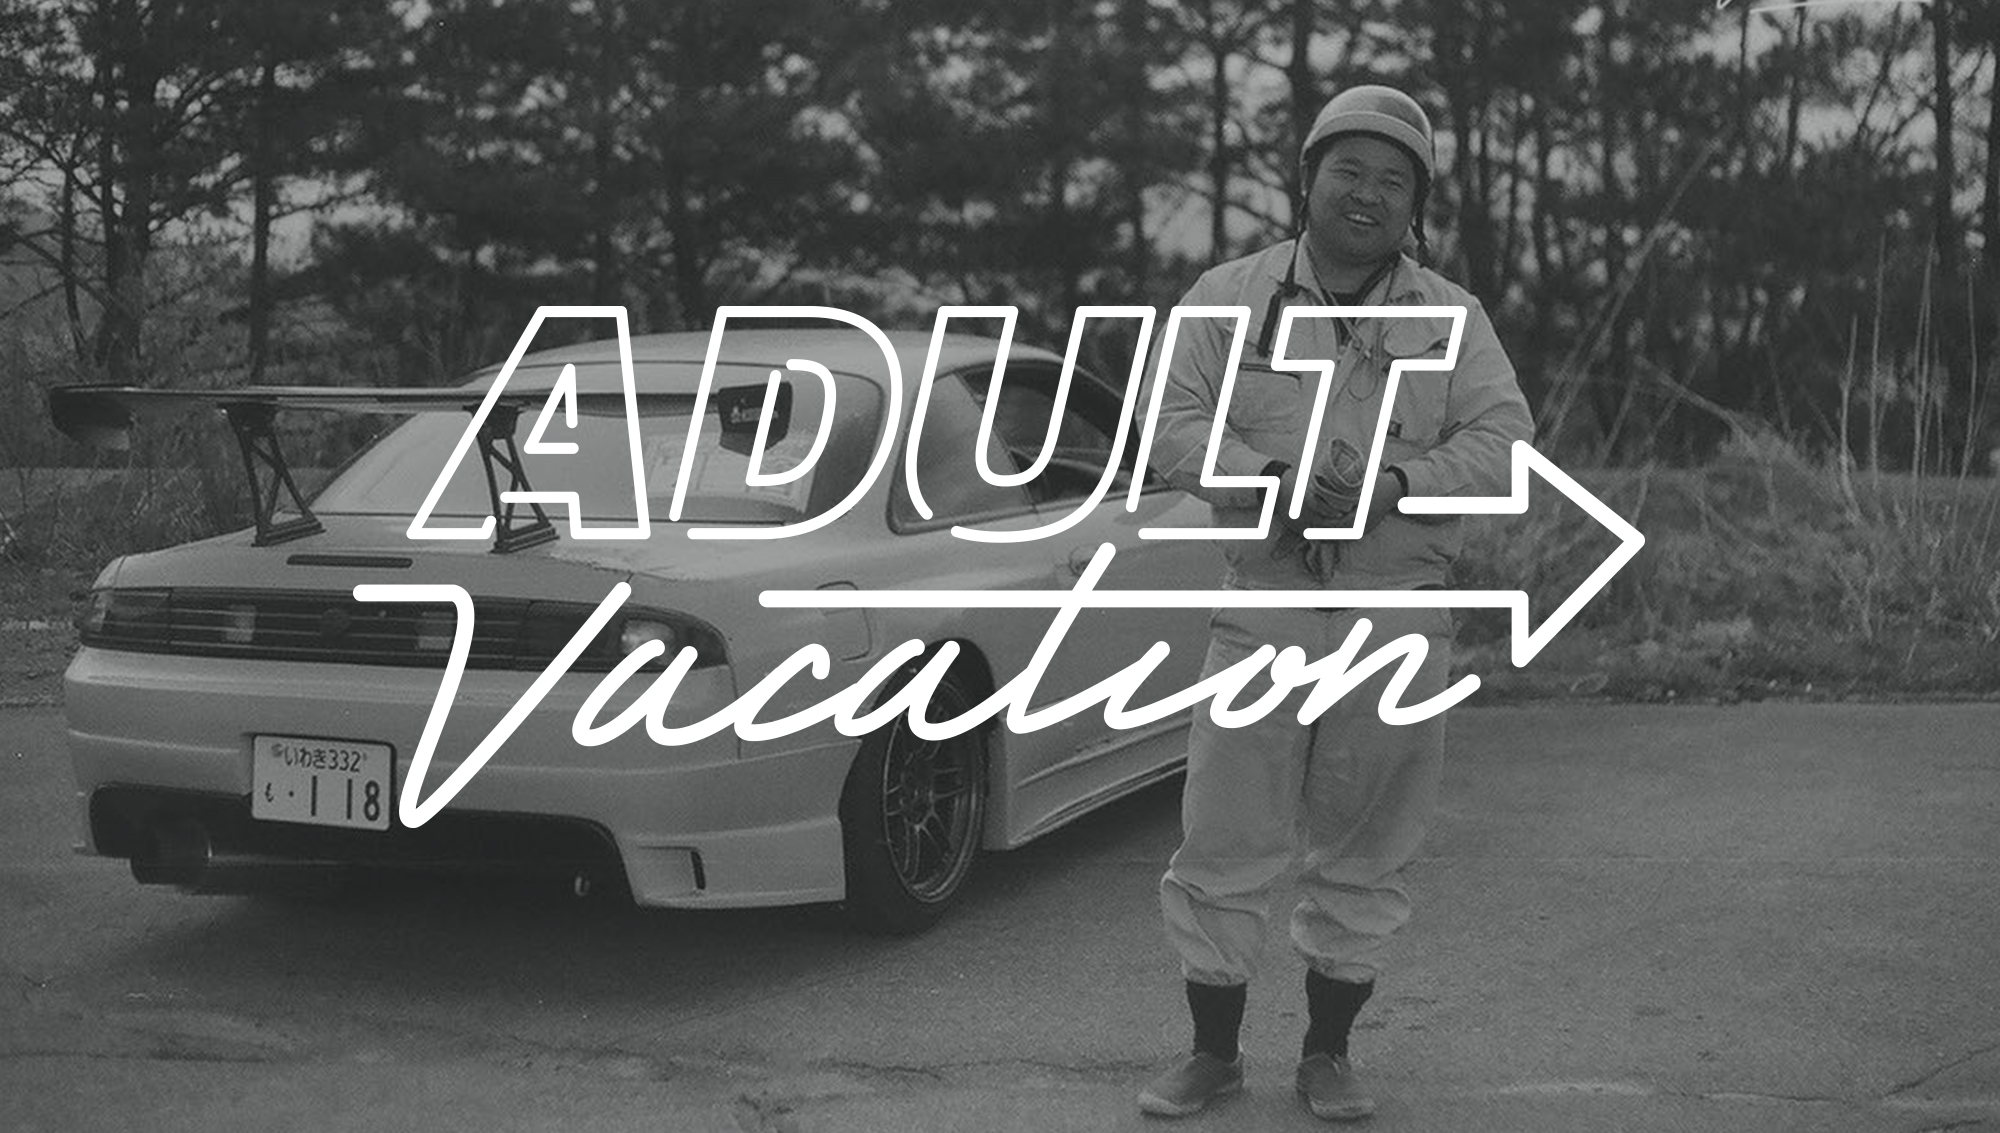 adultvacation-1.jpg